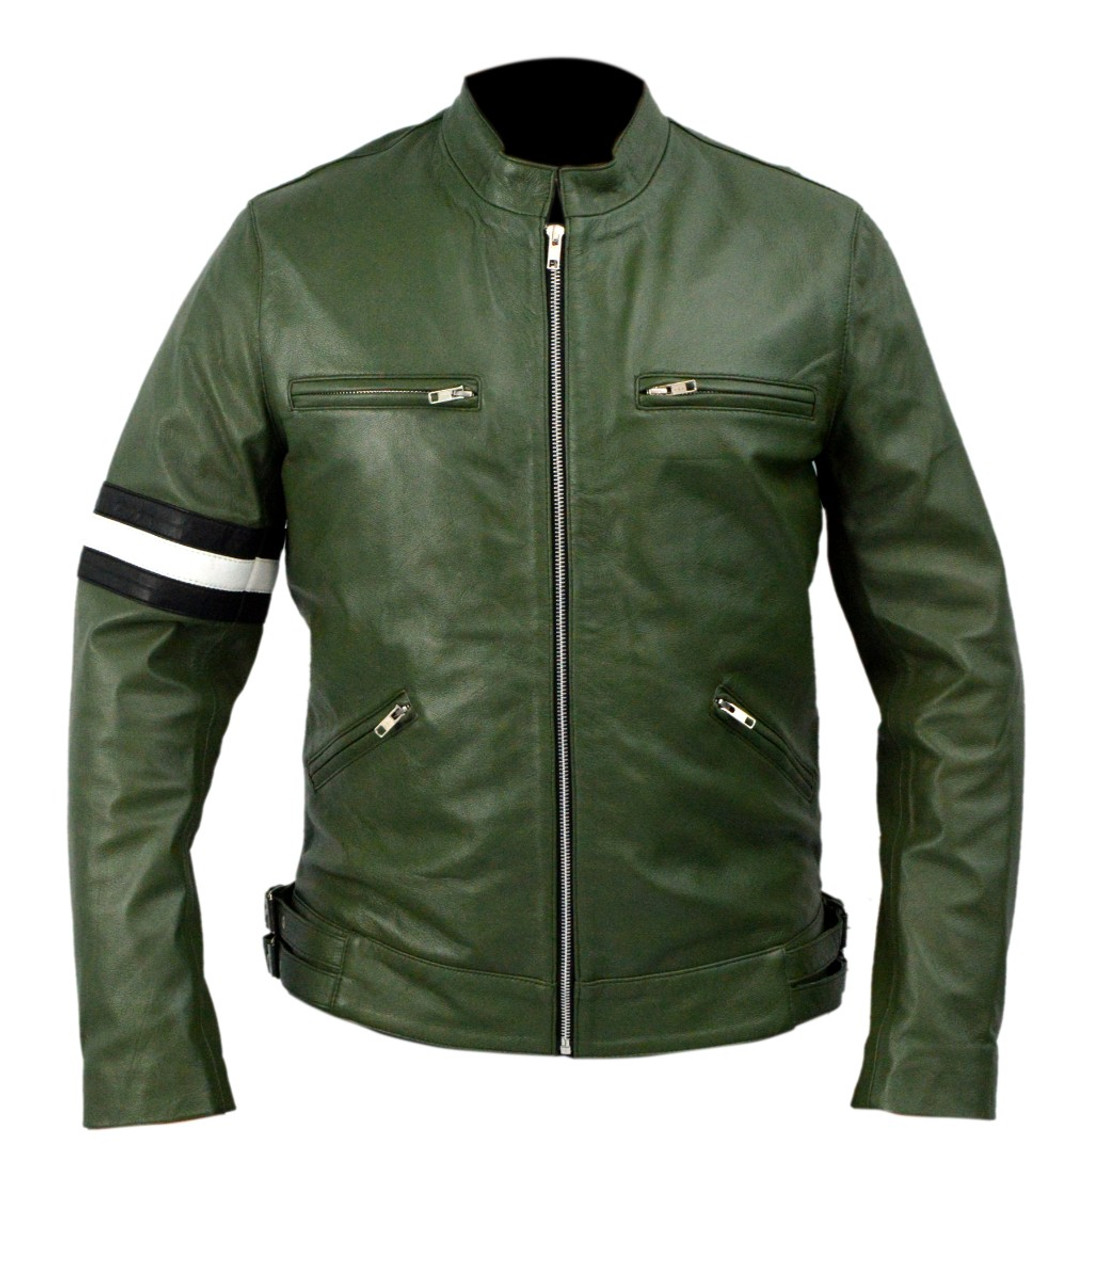 39d22933a Spazeup Dirk Detective Green Gently Agency Jacket